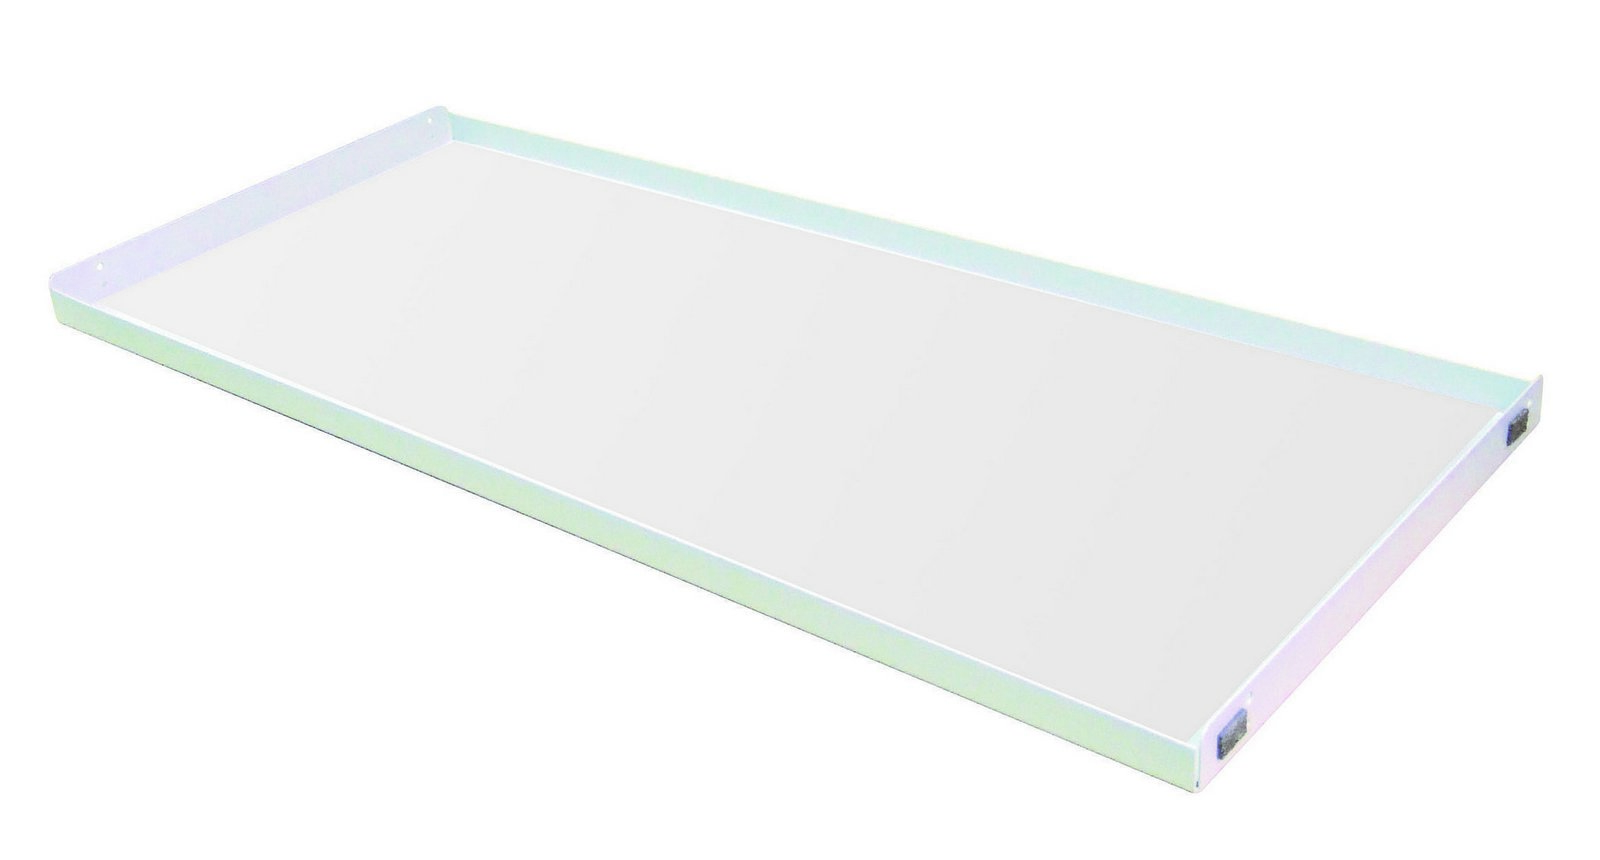 Powder Coated Steel Shelf